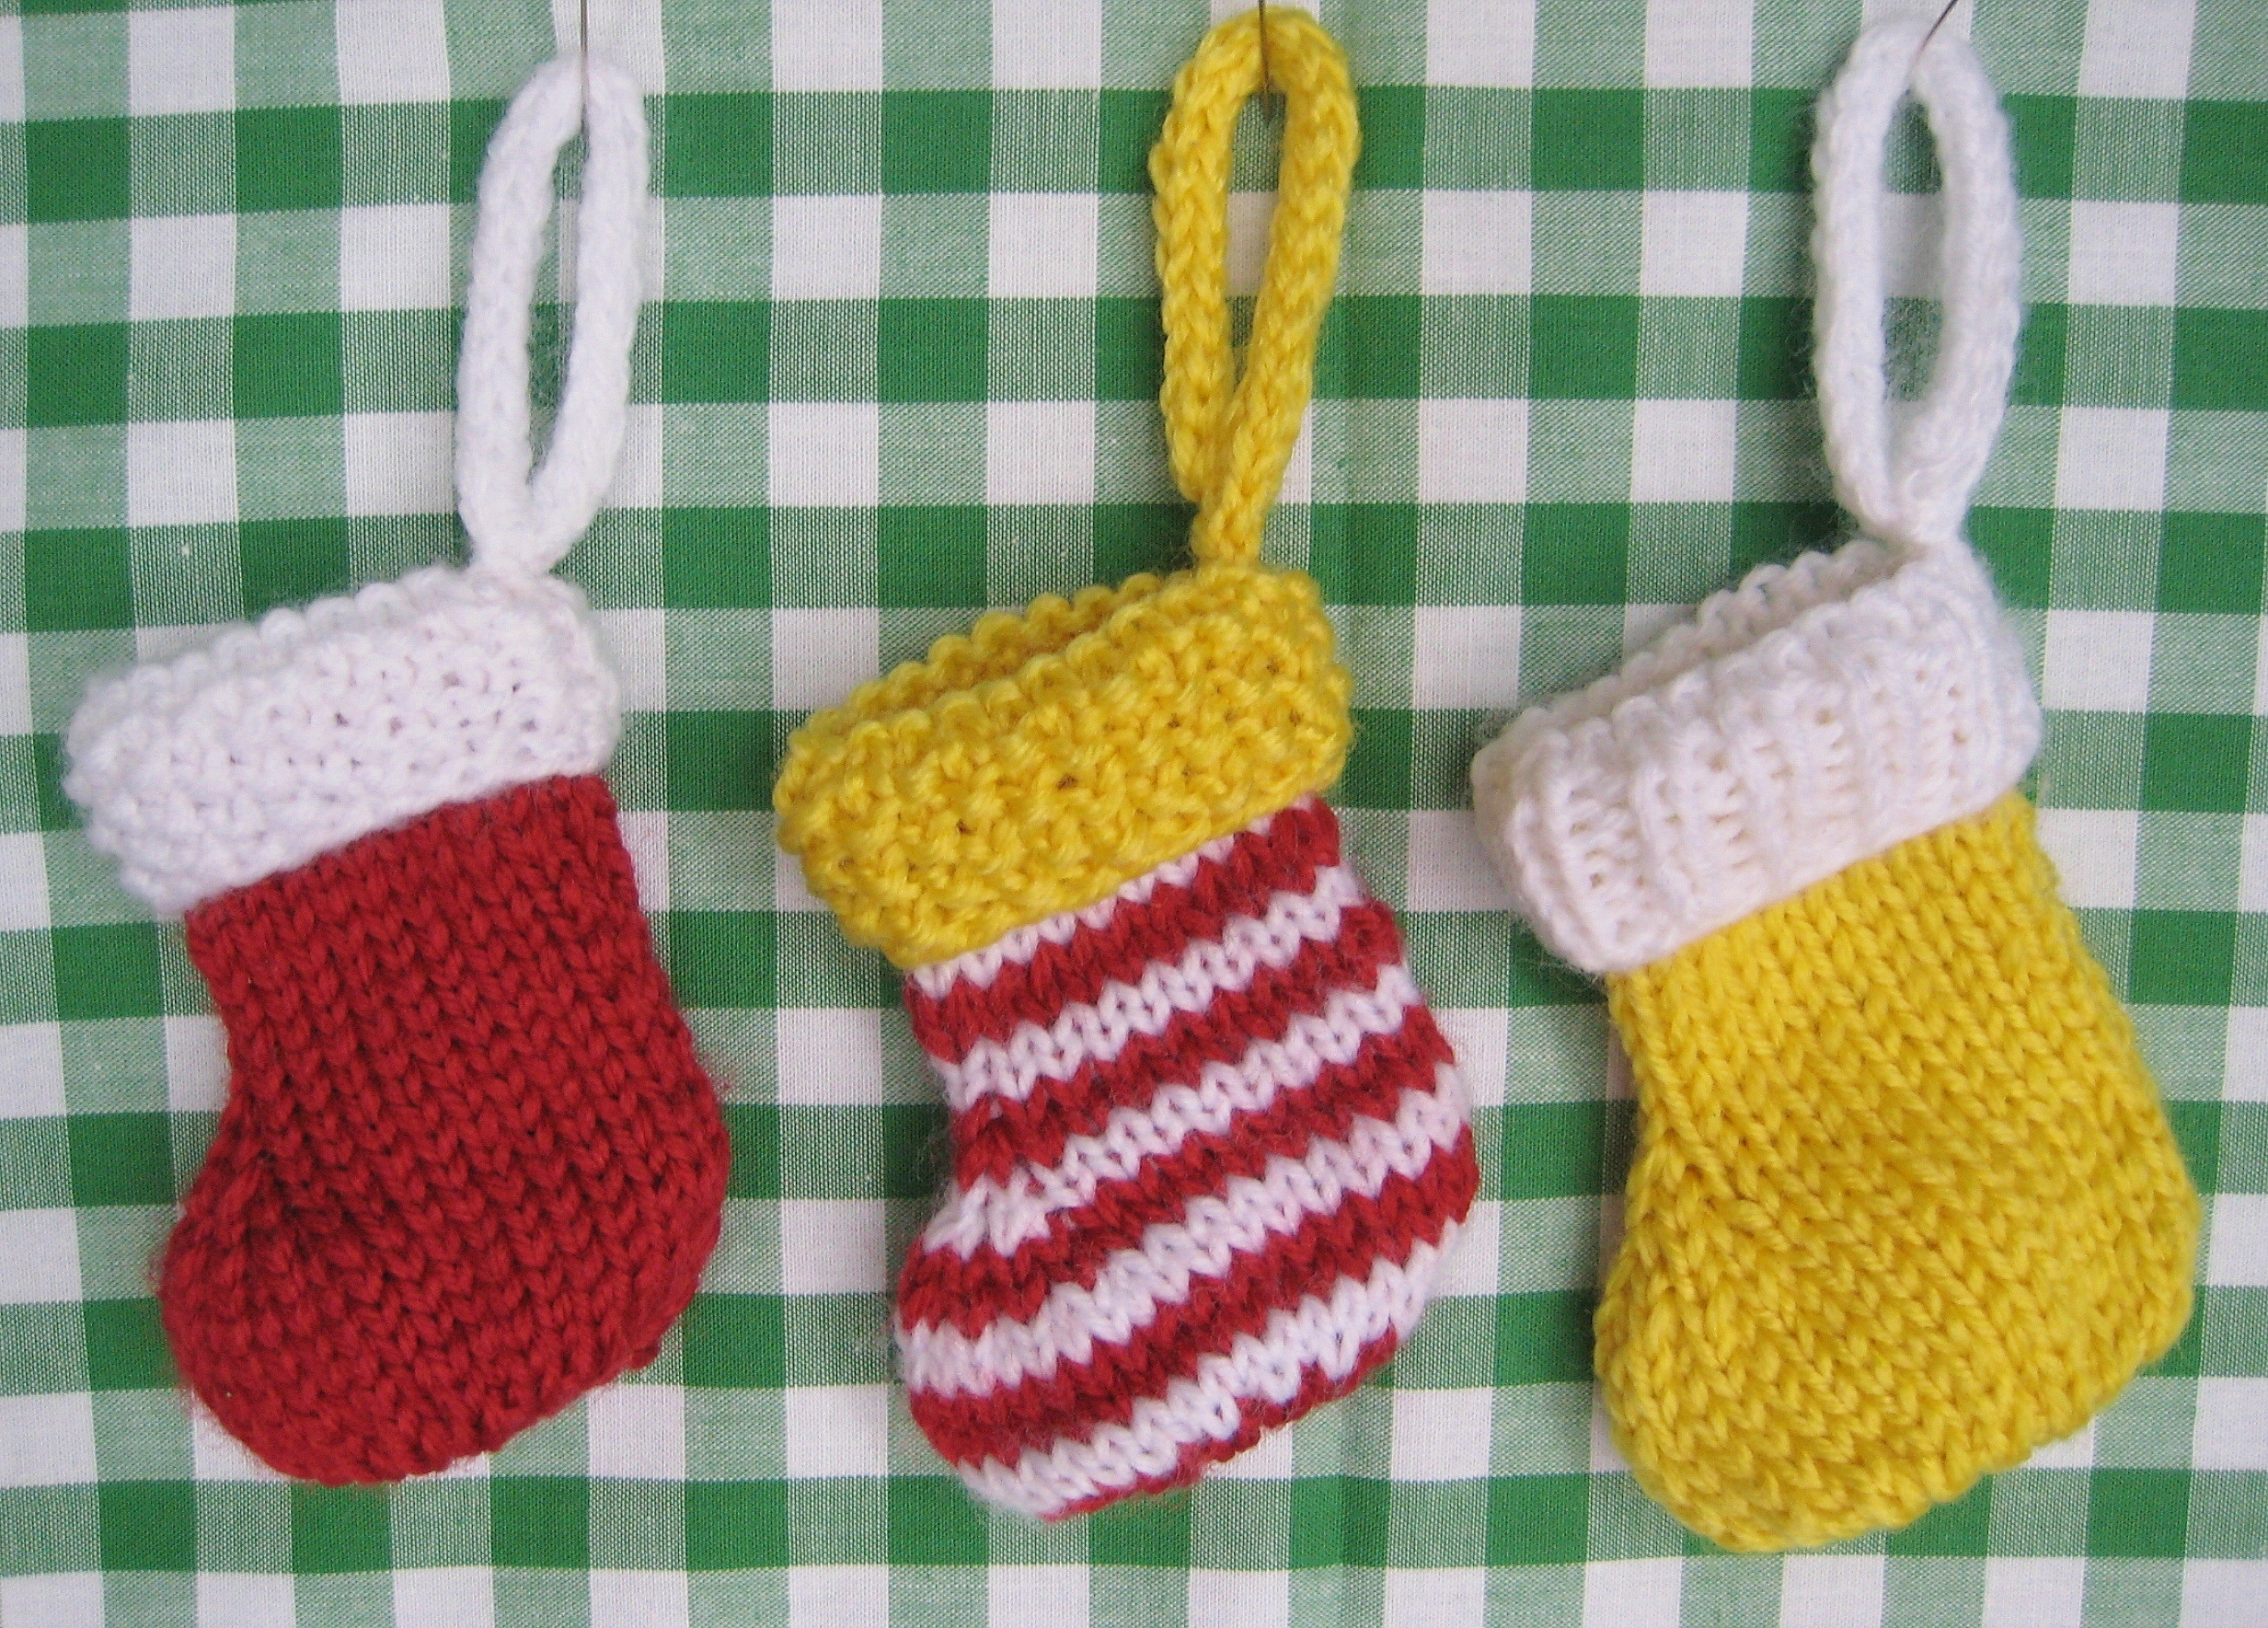 KNITTING PATTERN FOR CHRISTMAS STOCKING FREE PATTERNS